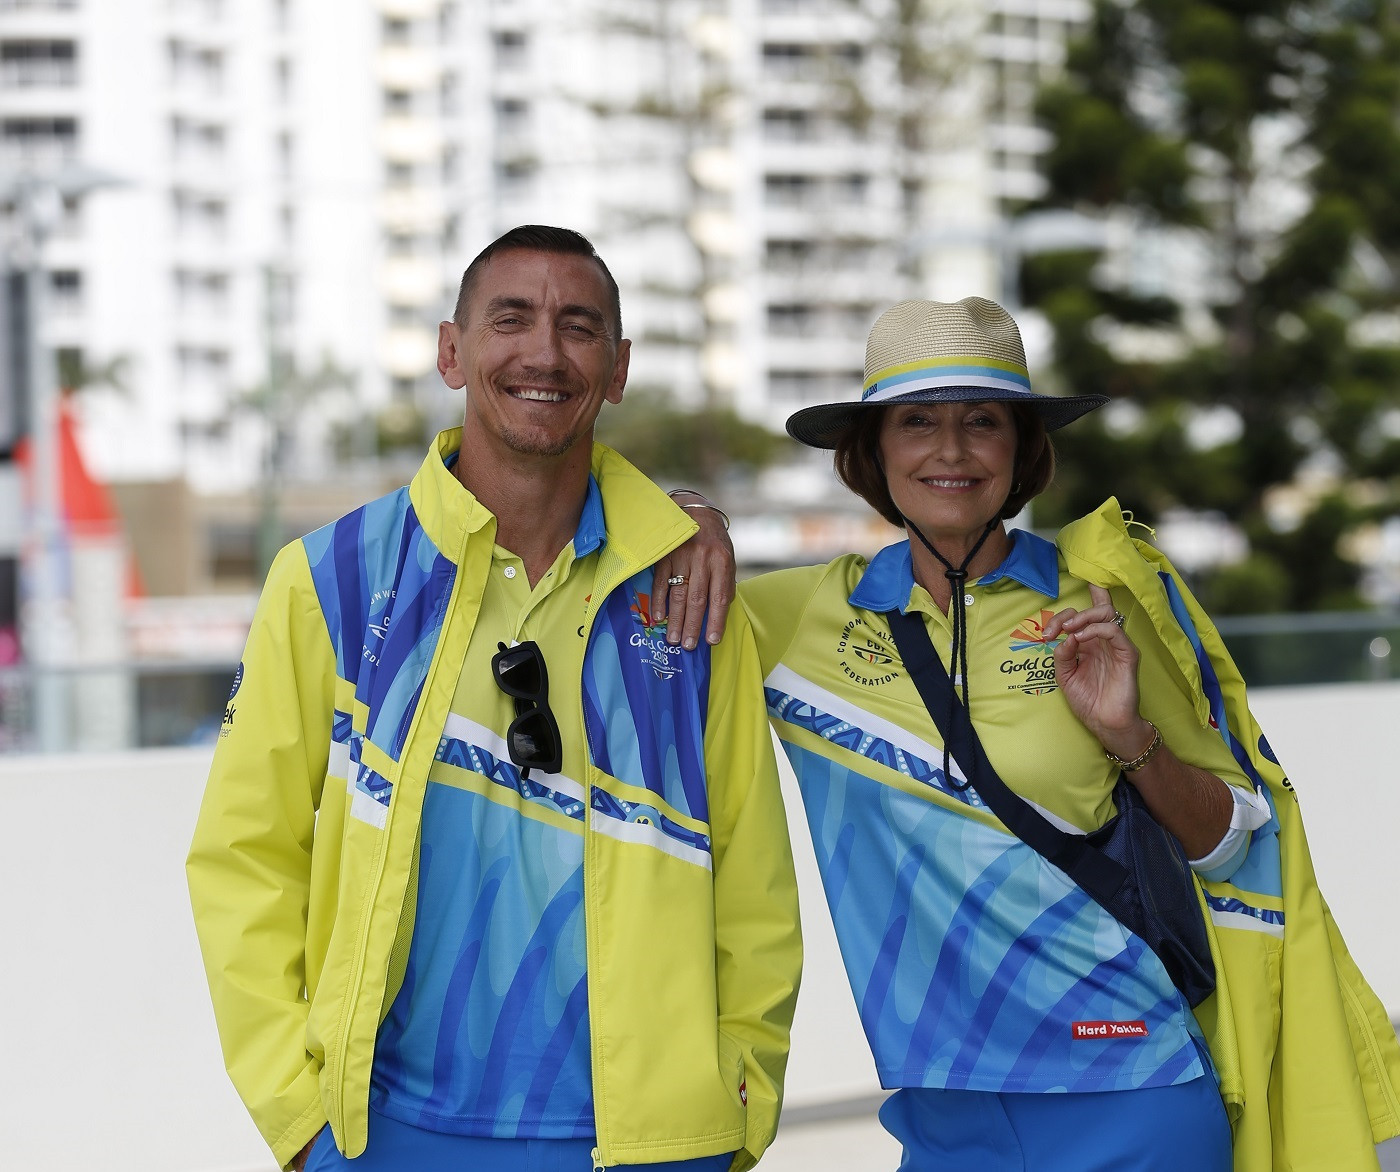 Gold Coast 2018 volunteers presented with uniforms